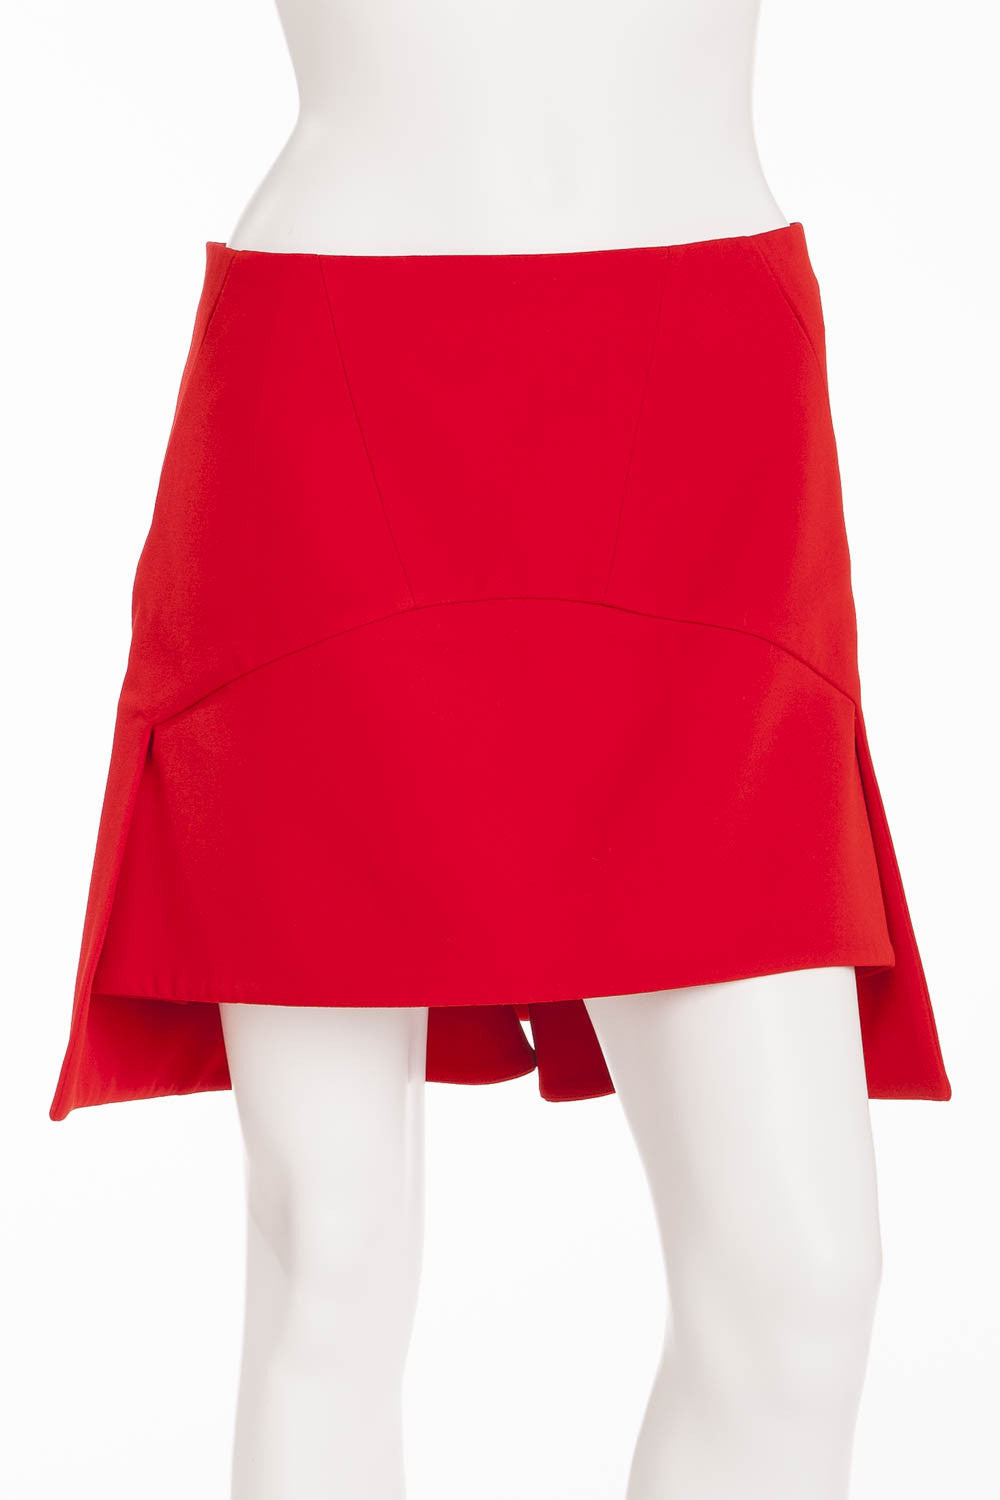 Givenchy - Red Asymmetrical Mini Skirt - FR 38